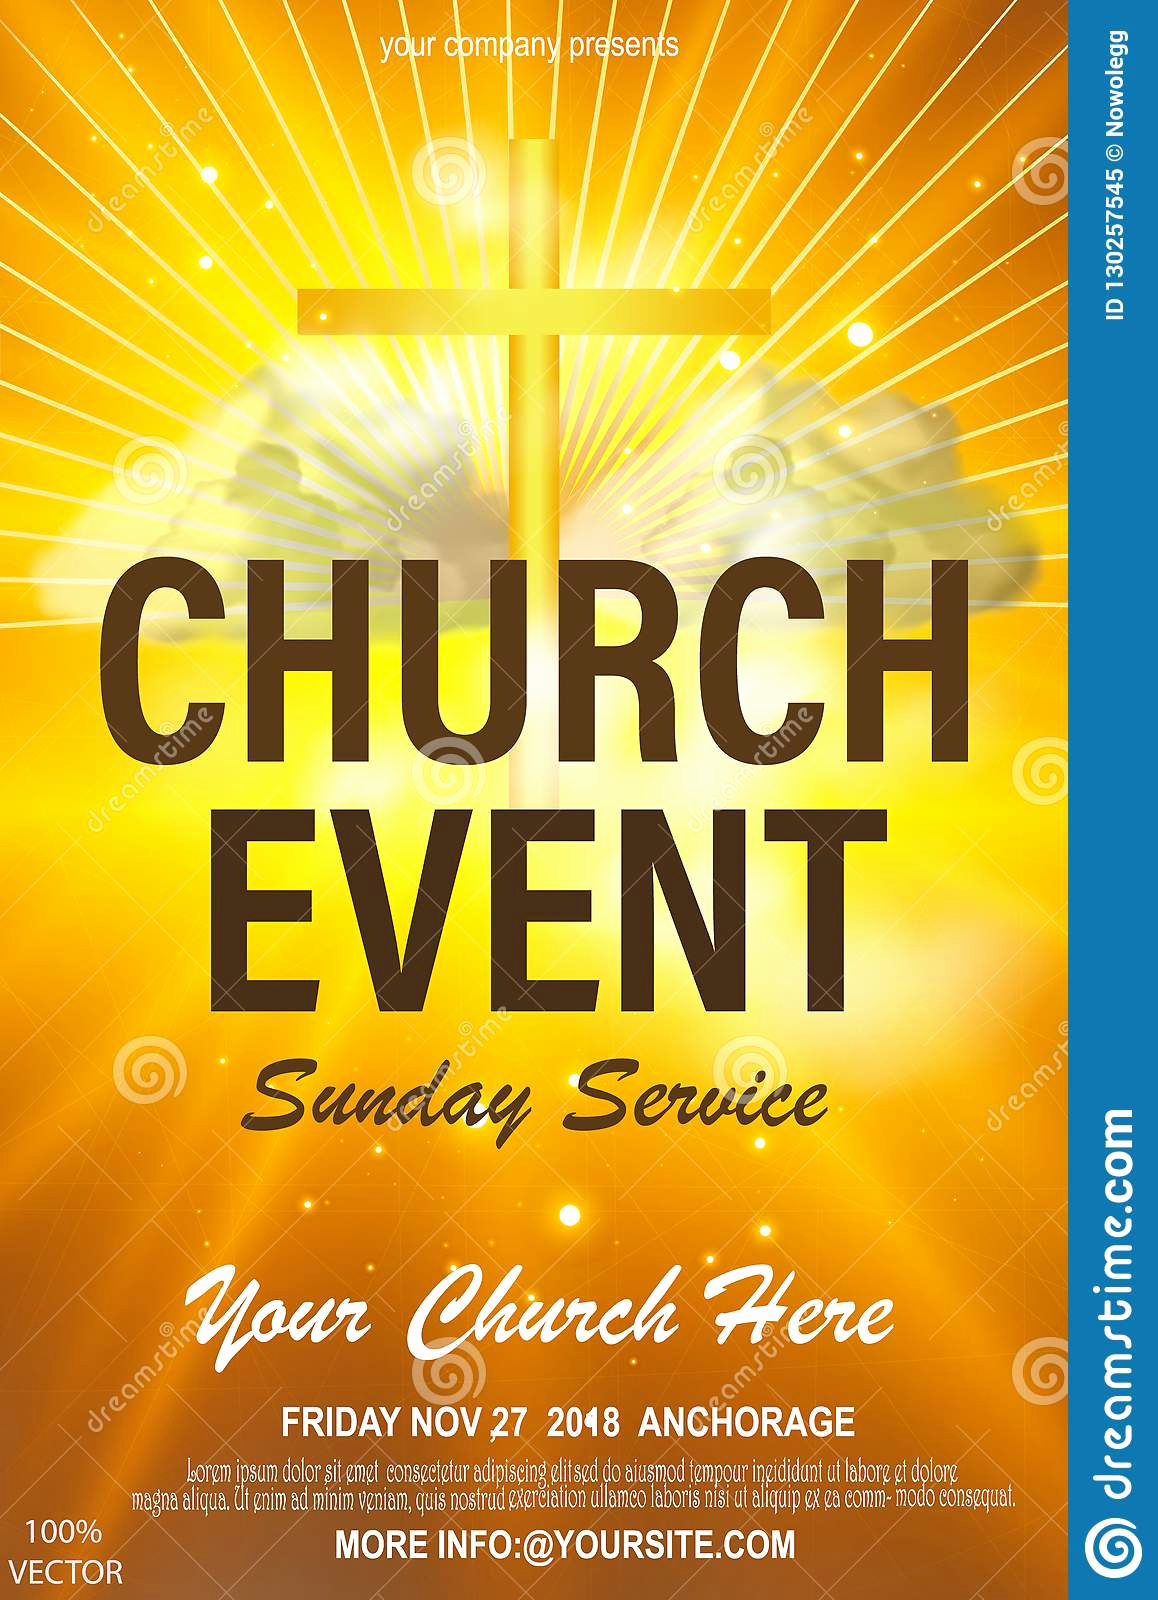 Church Invitation Cards Templates Lovely Christian Invitation Poster Template Religious Flyer Card